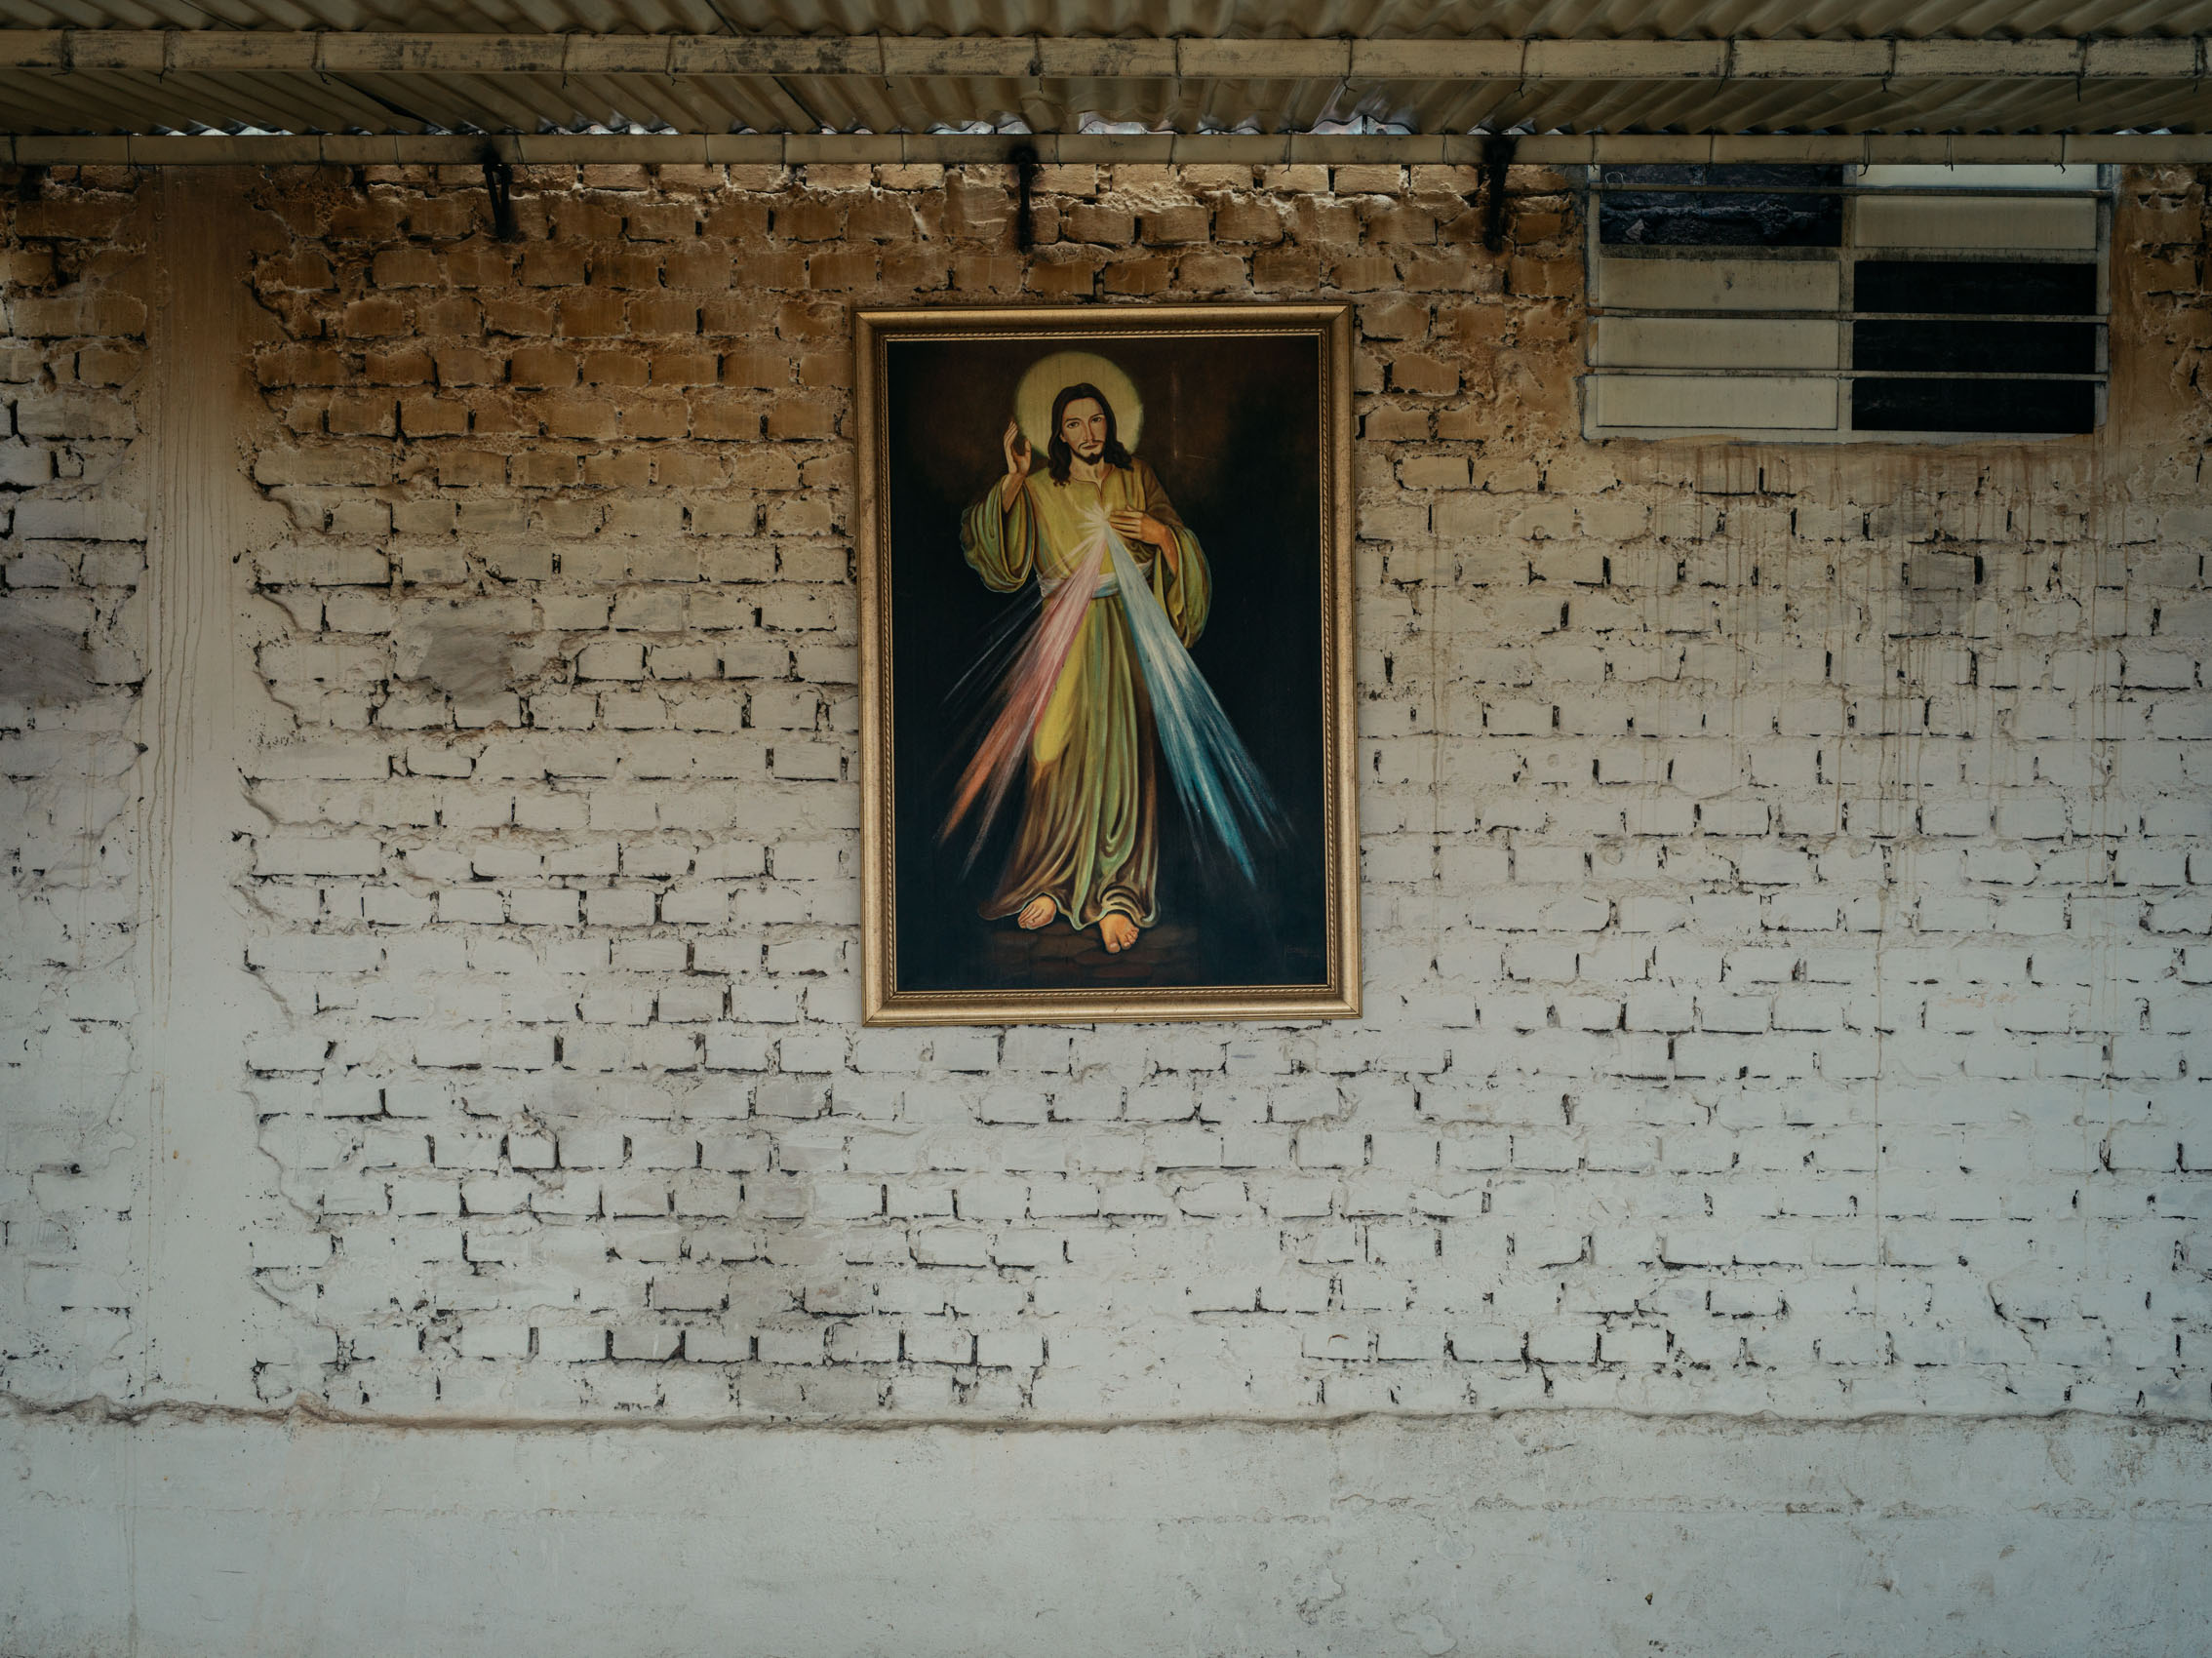 A painting of Jesus hangs on a white brick wall